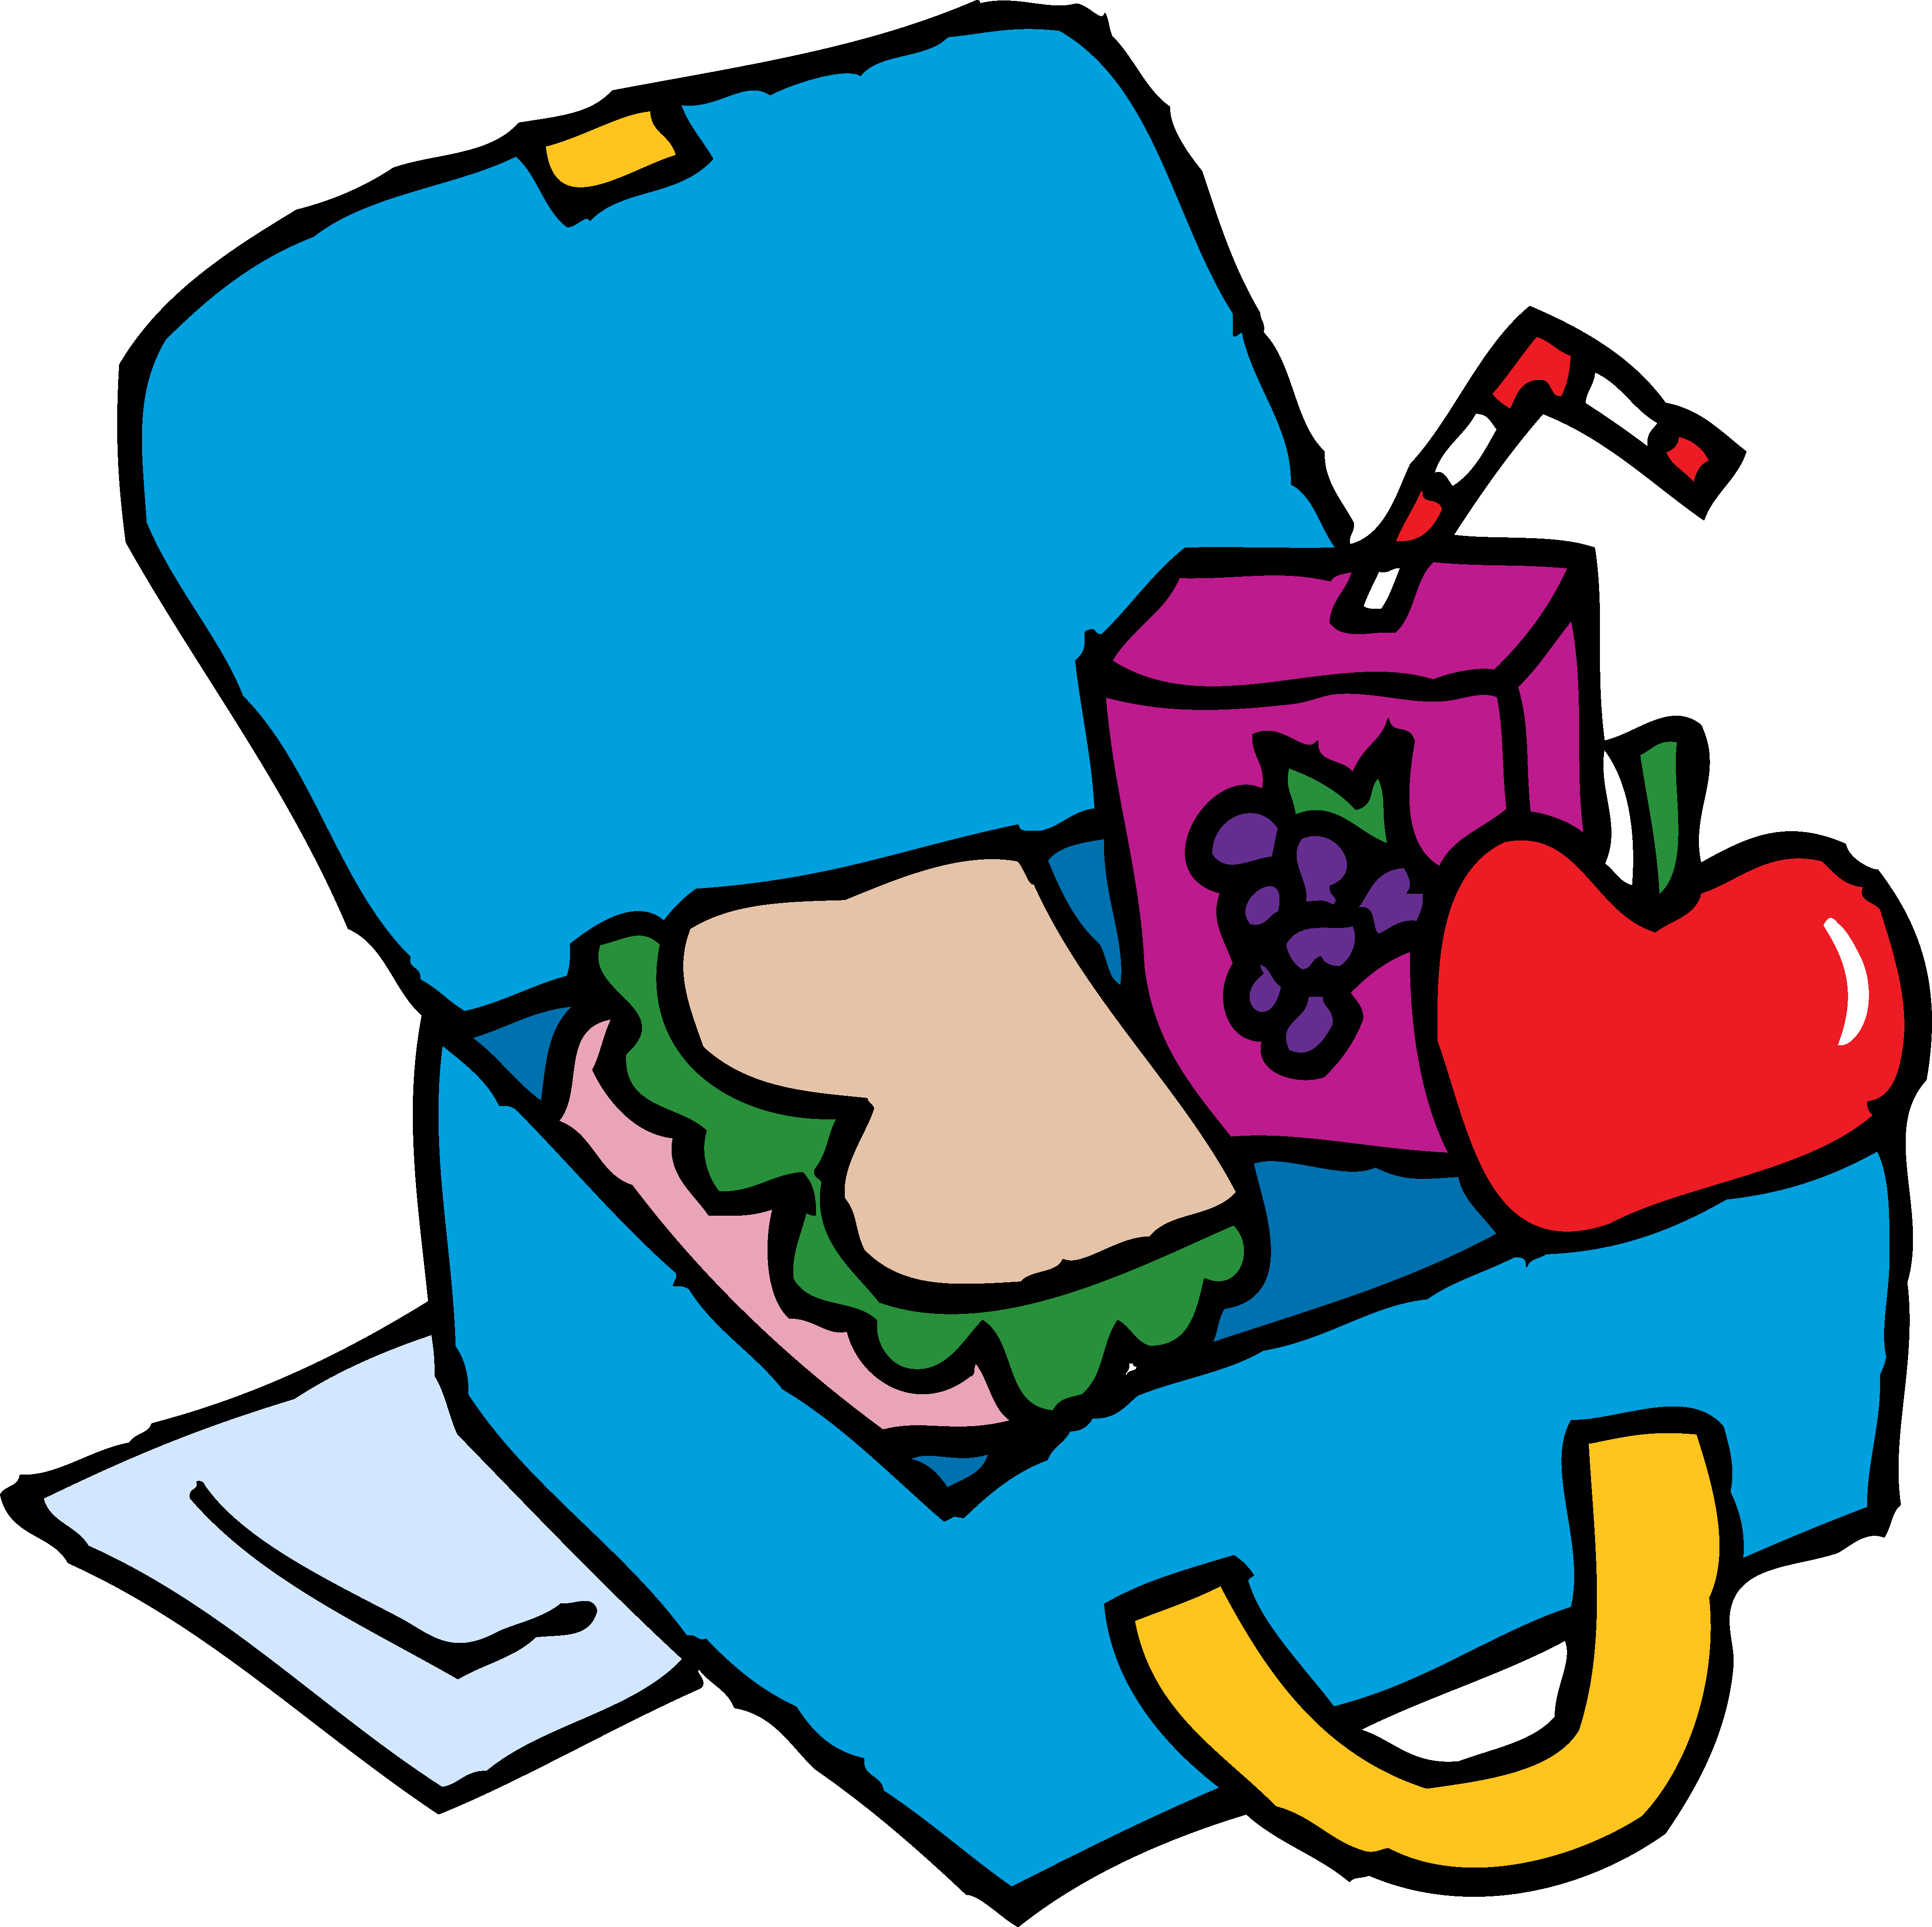 Lunch Time Png Free Png Images 1